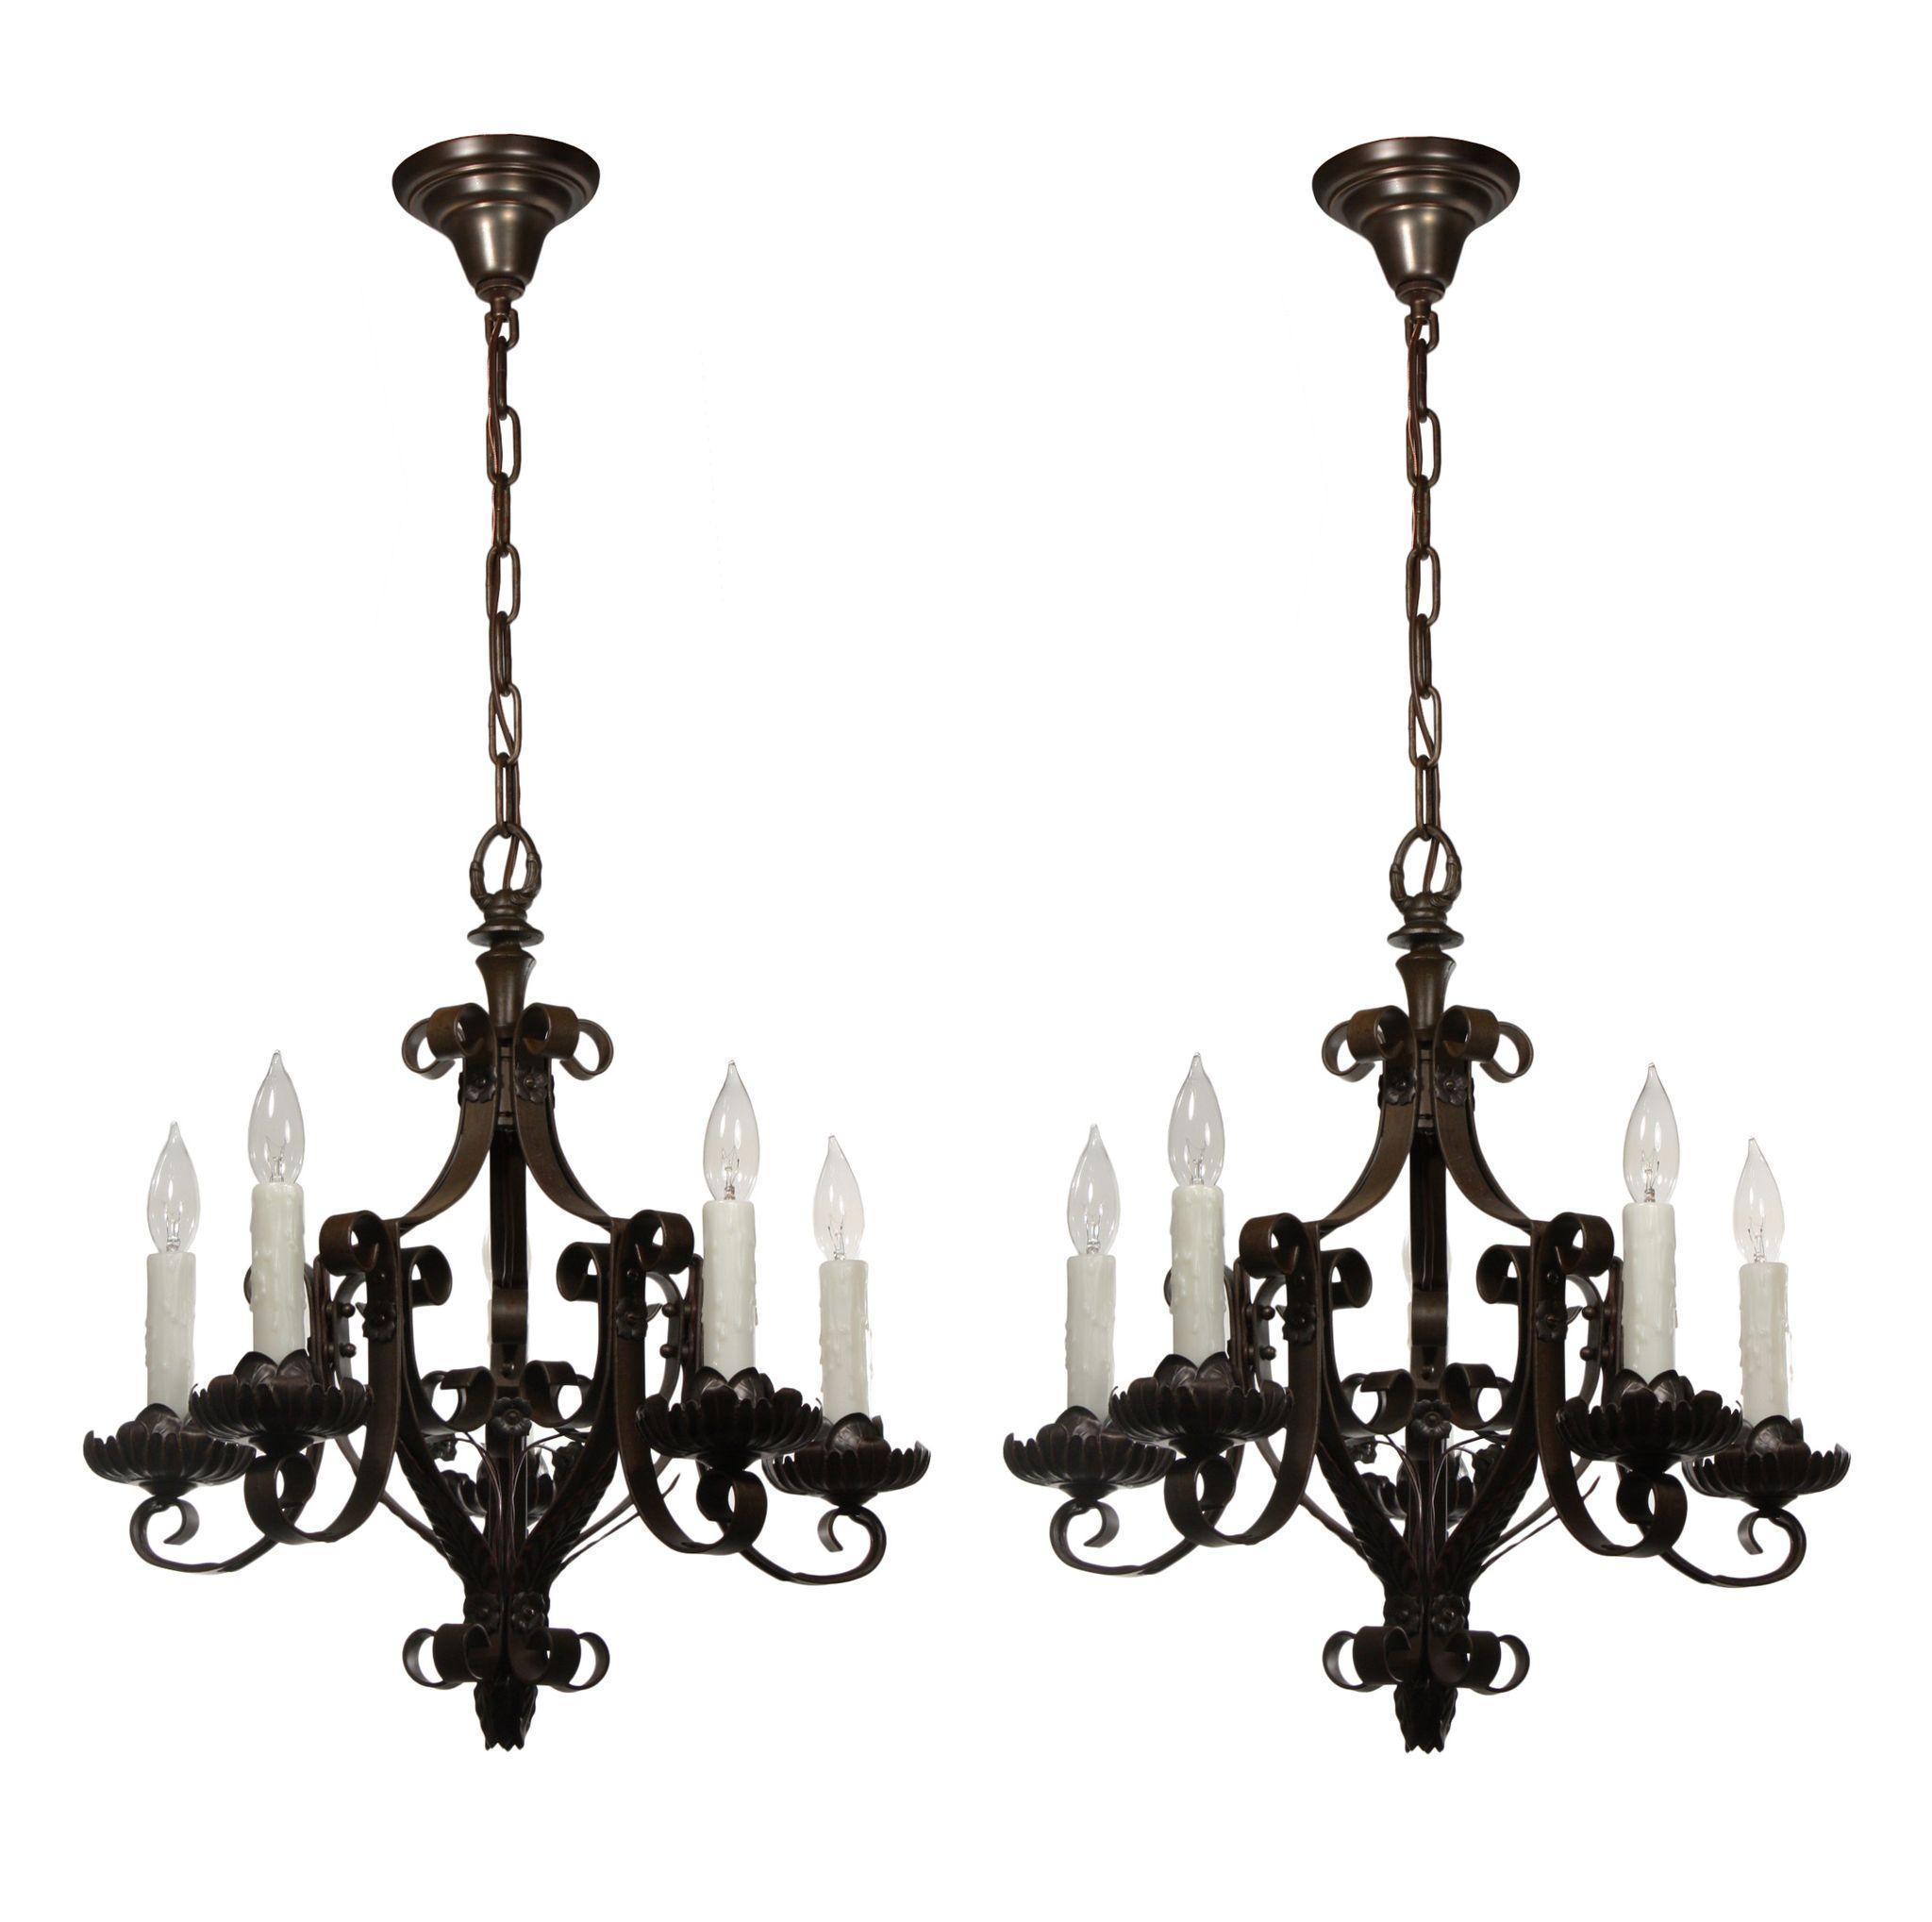 Marvelous Antique Iron Chandeliers